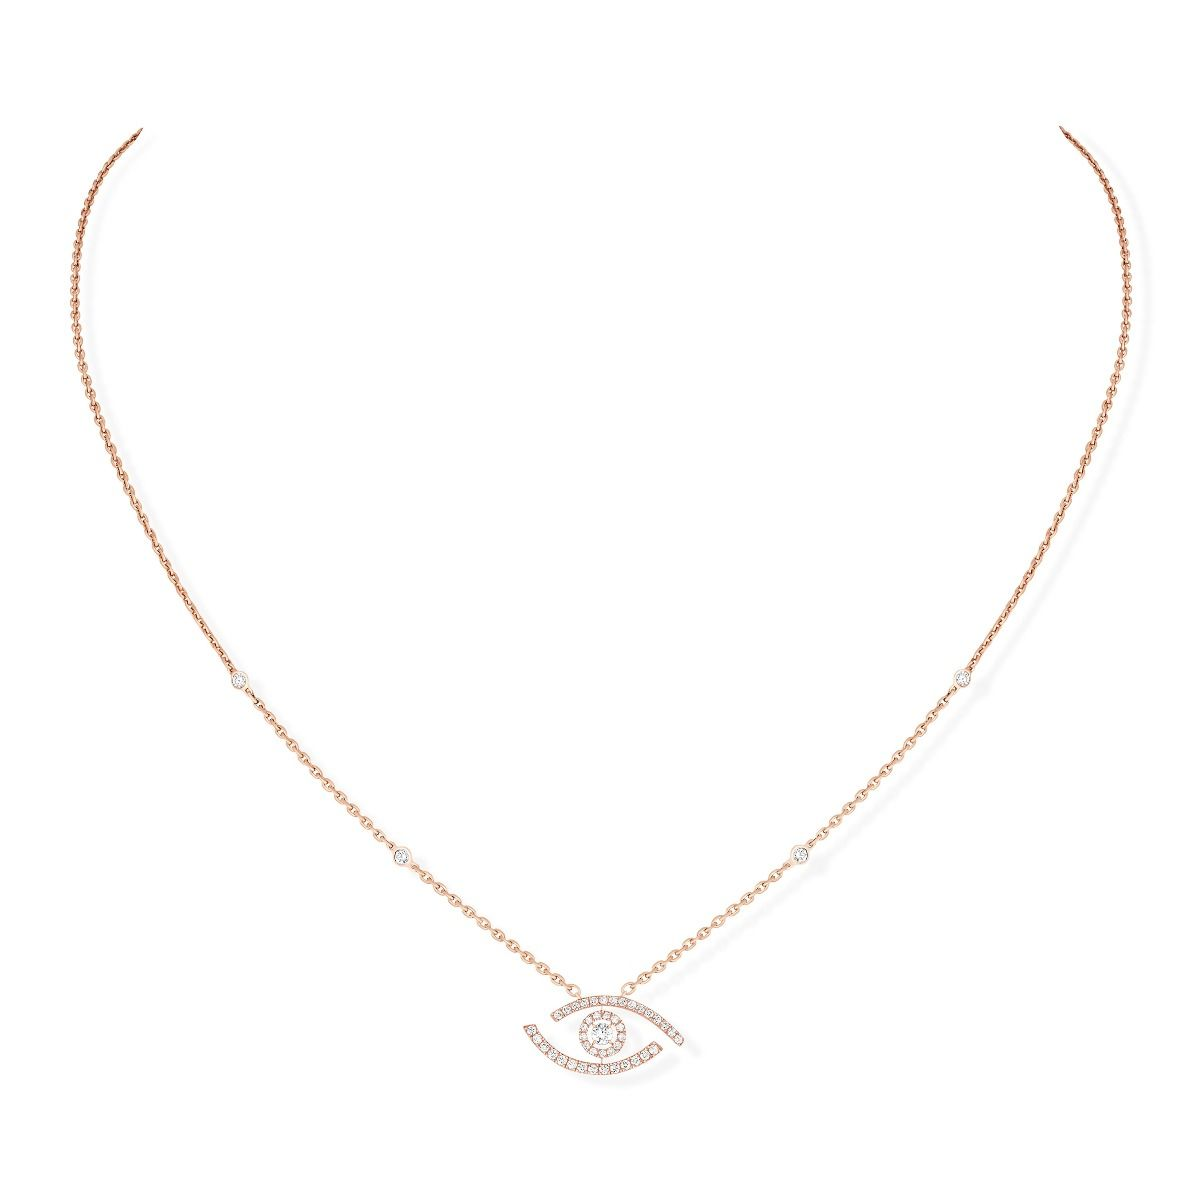 Lucky Eye Pavé Necklace - Pink Gold